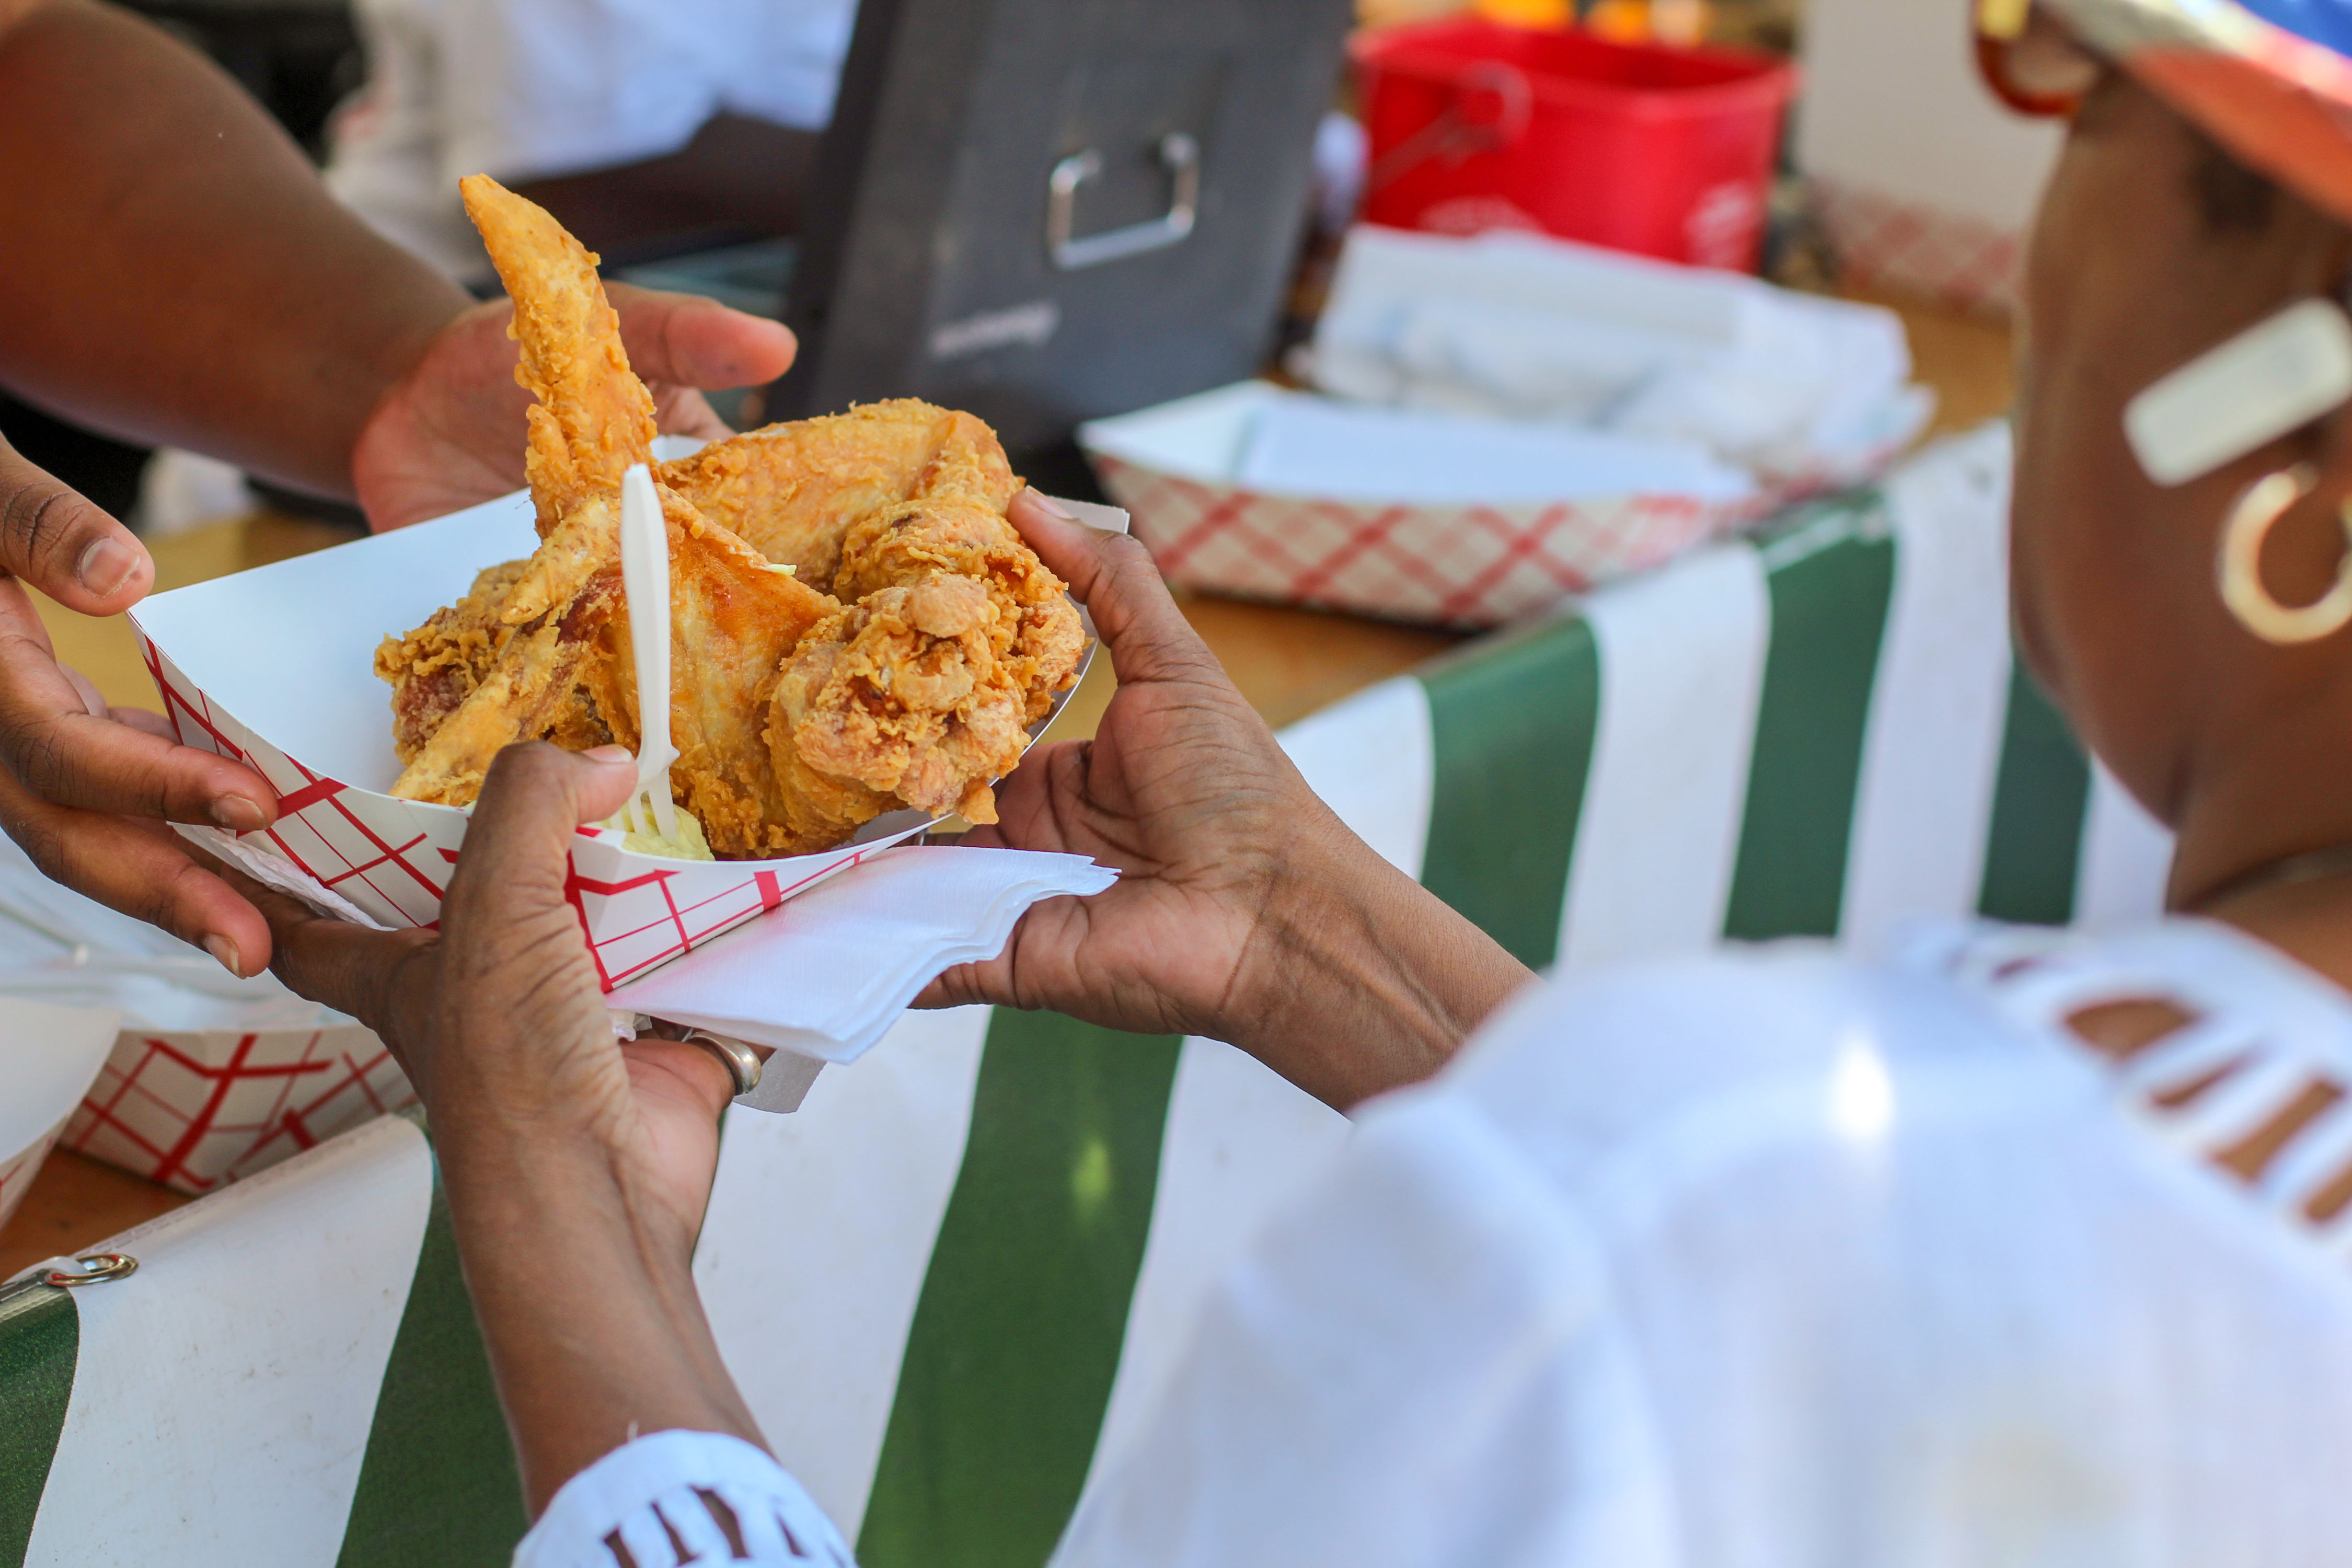 Alert: New Orleans Is Hosting the National Fried Chicken Festival This Weekend